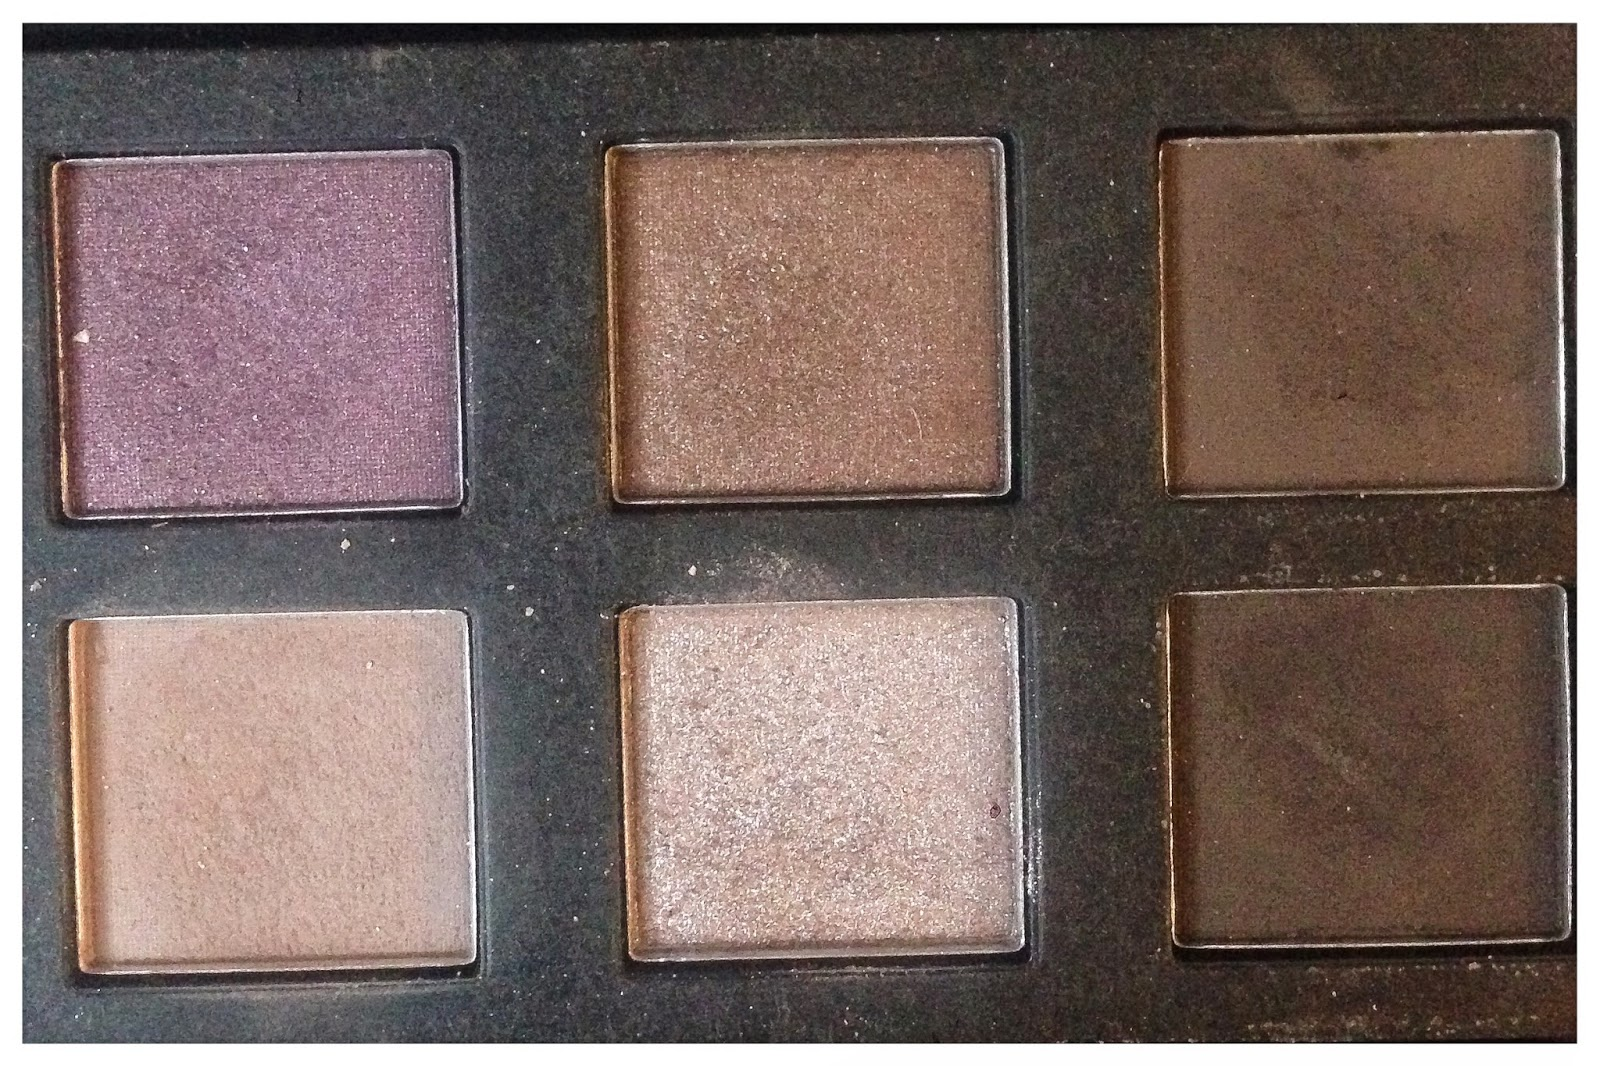 Sephora Collection It Palette Nude Closeup 2